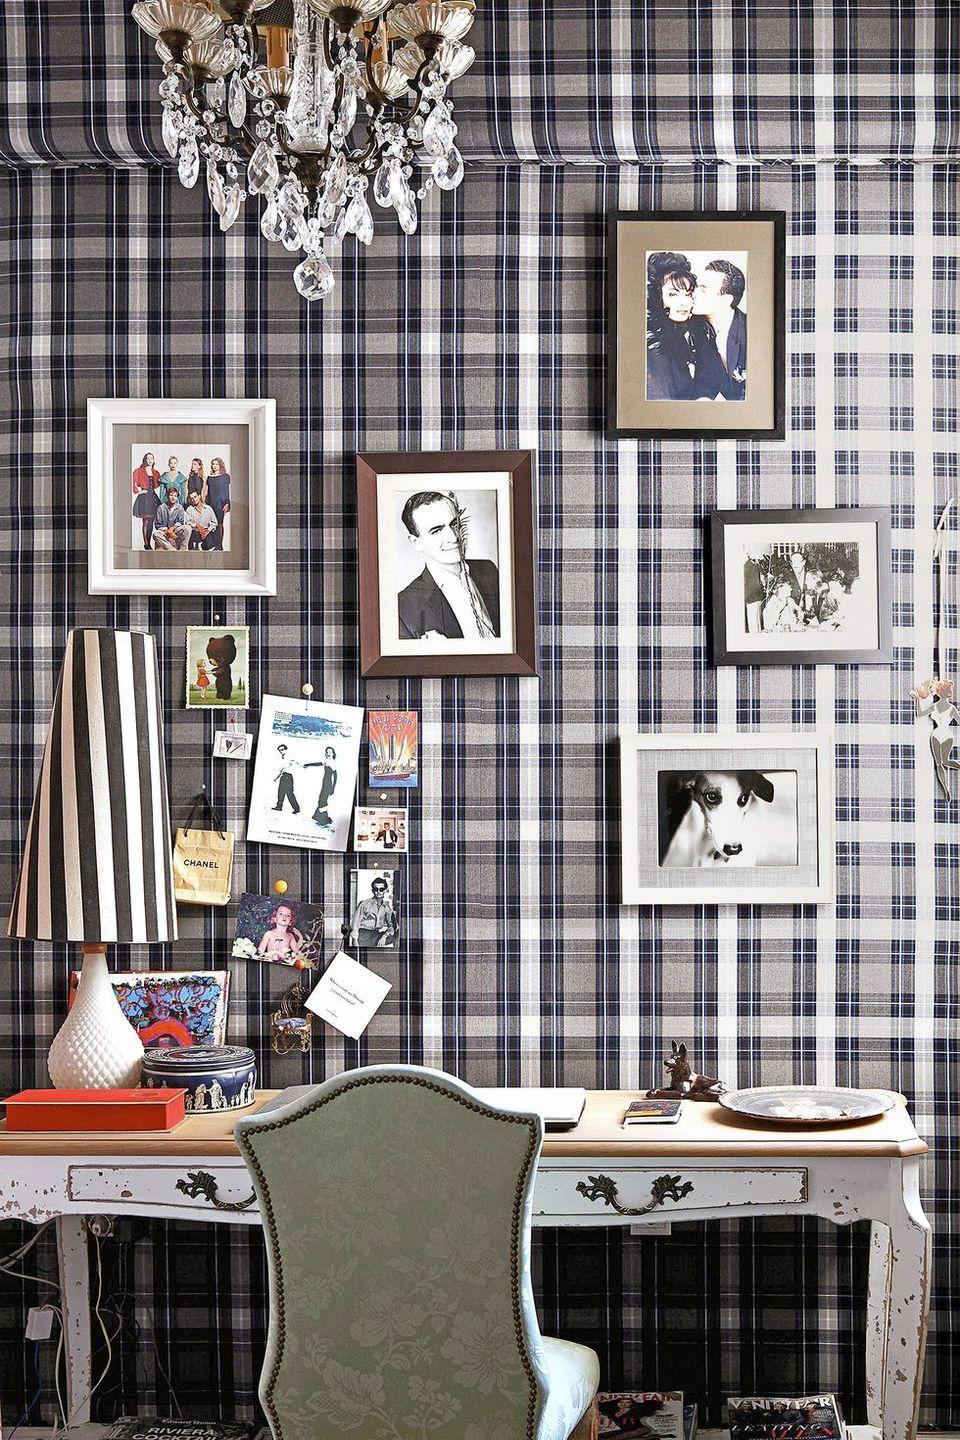 <p>Covering a wall with plaid fabric (or any patterned fabric, for that matter) is a clever way to personalize your space. Plus, if you stick thin cork squares behind select areas of the wall, you can pin photos, prints, and notes straight to it. </p>